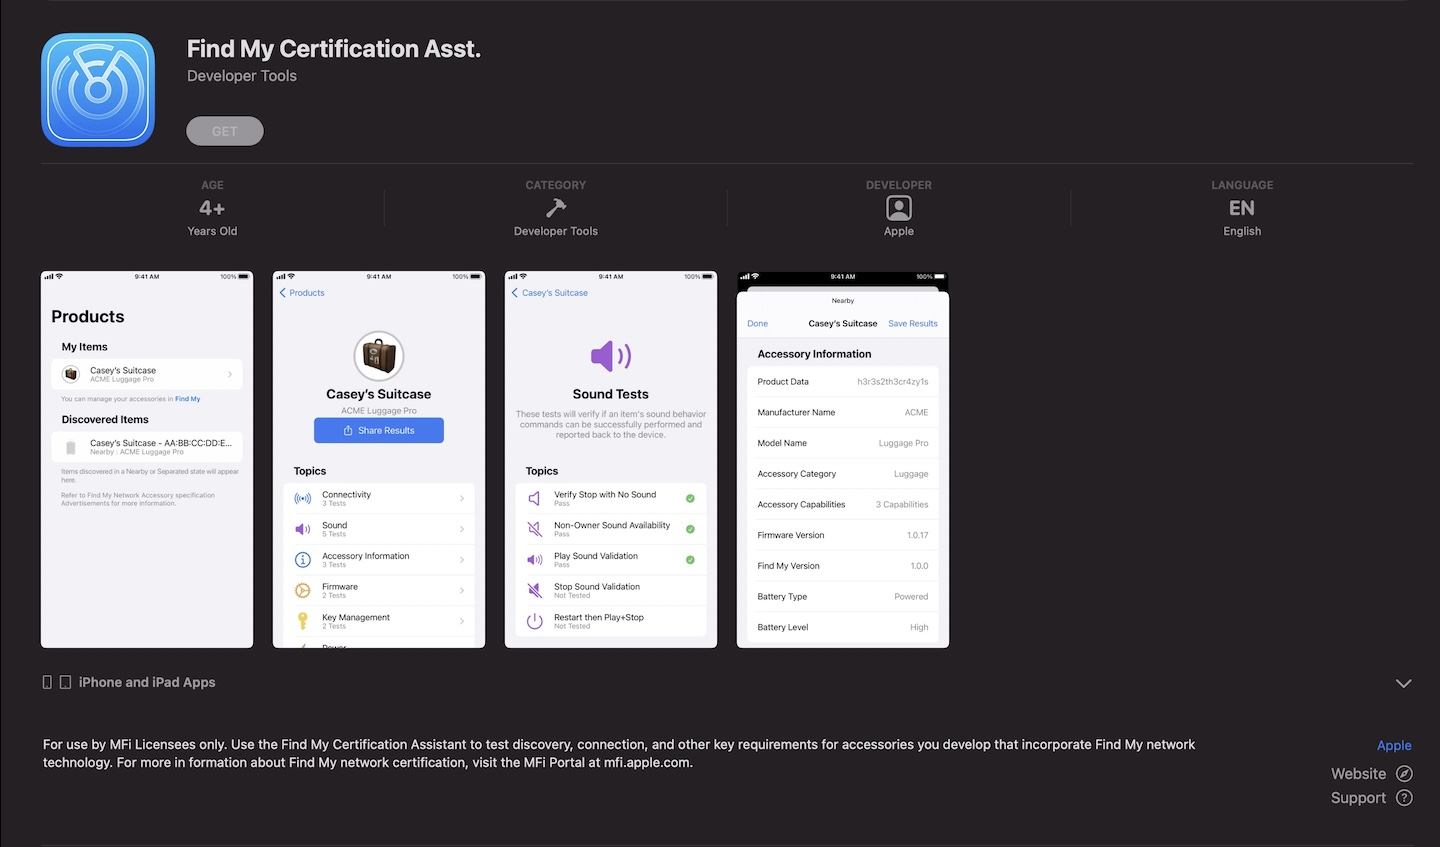 Find My Certification Asst App,Apple Releases New Find My Certification Asst App,Find My application.,Find My app